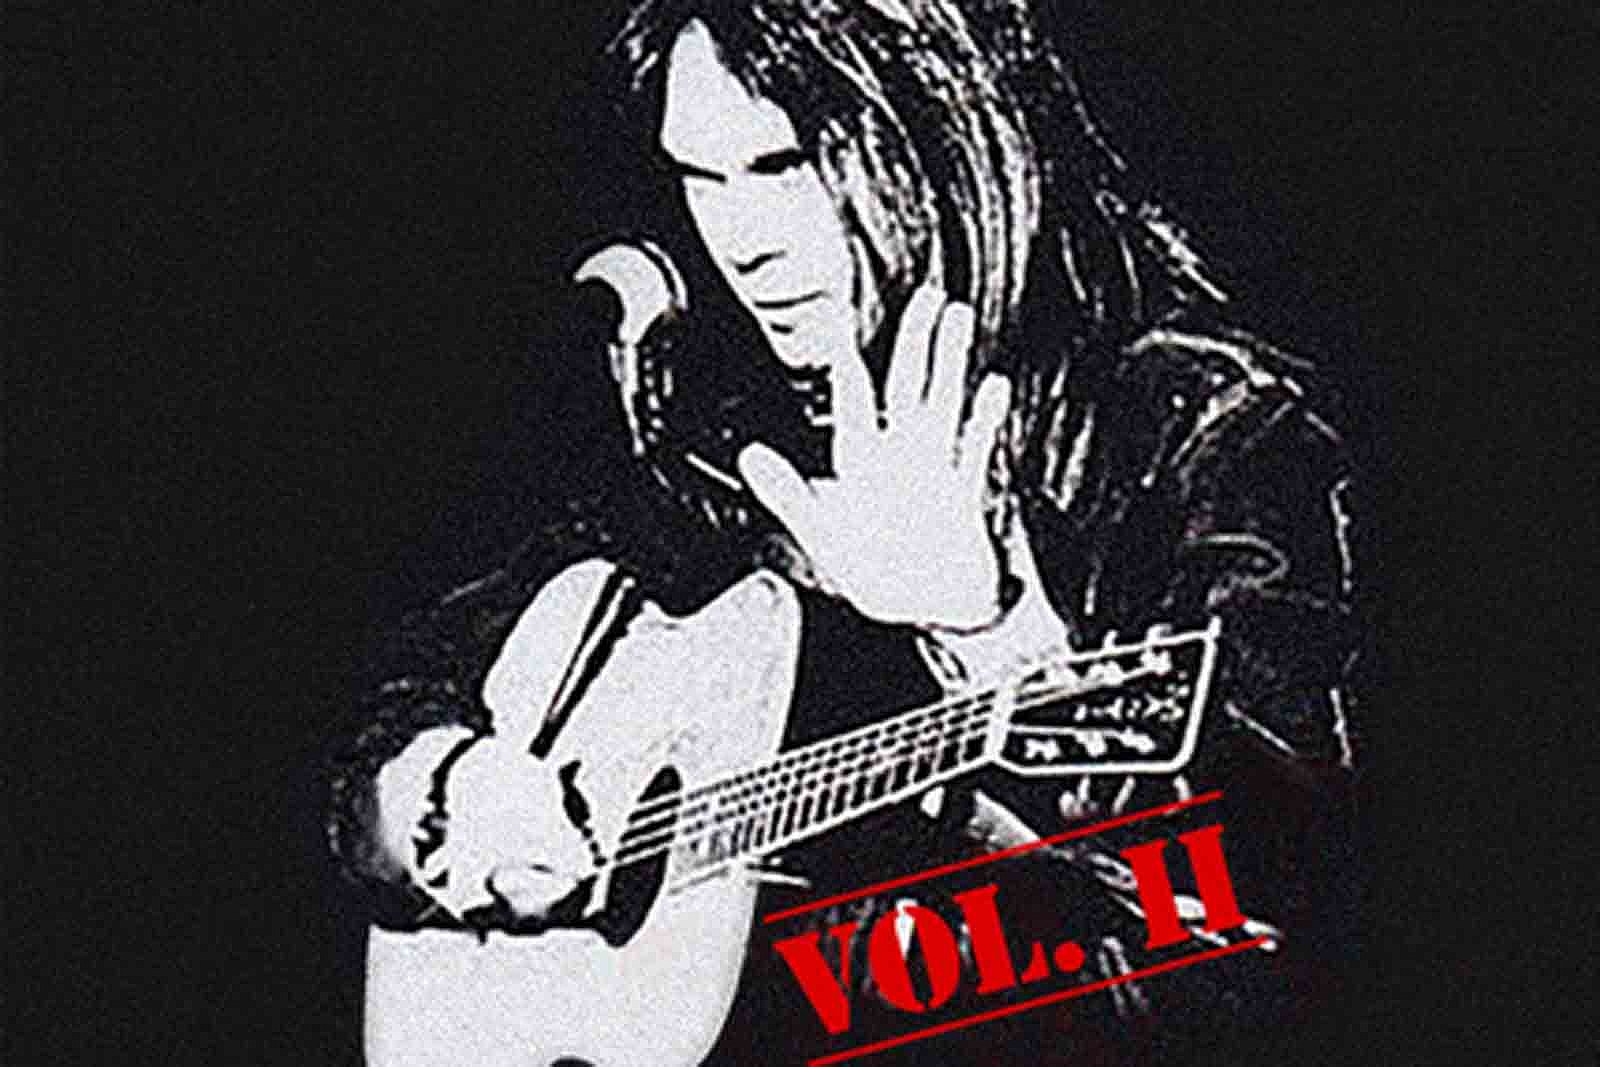 Neil Young Archives Vol Ii 1972 1976 Album Review